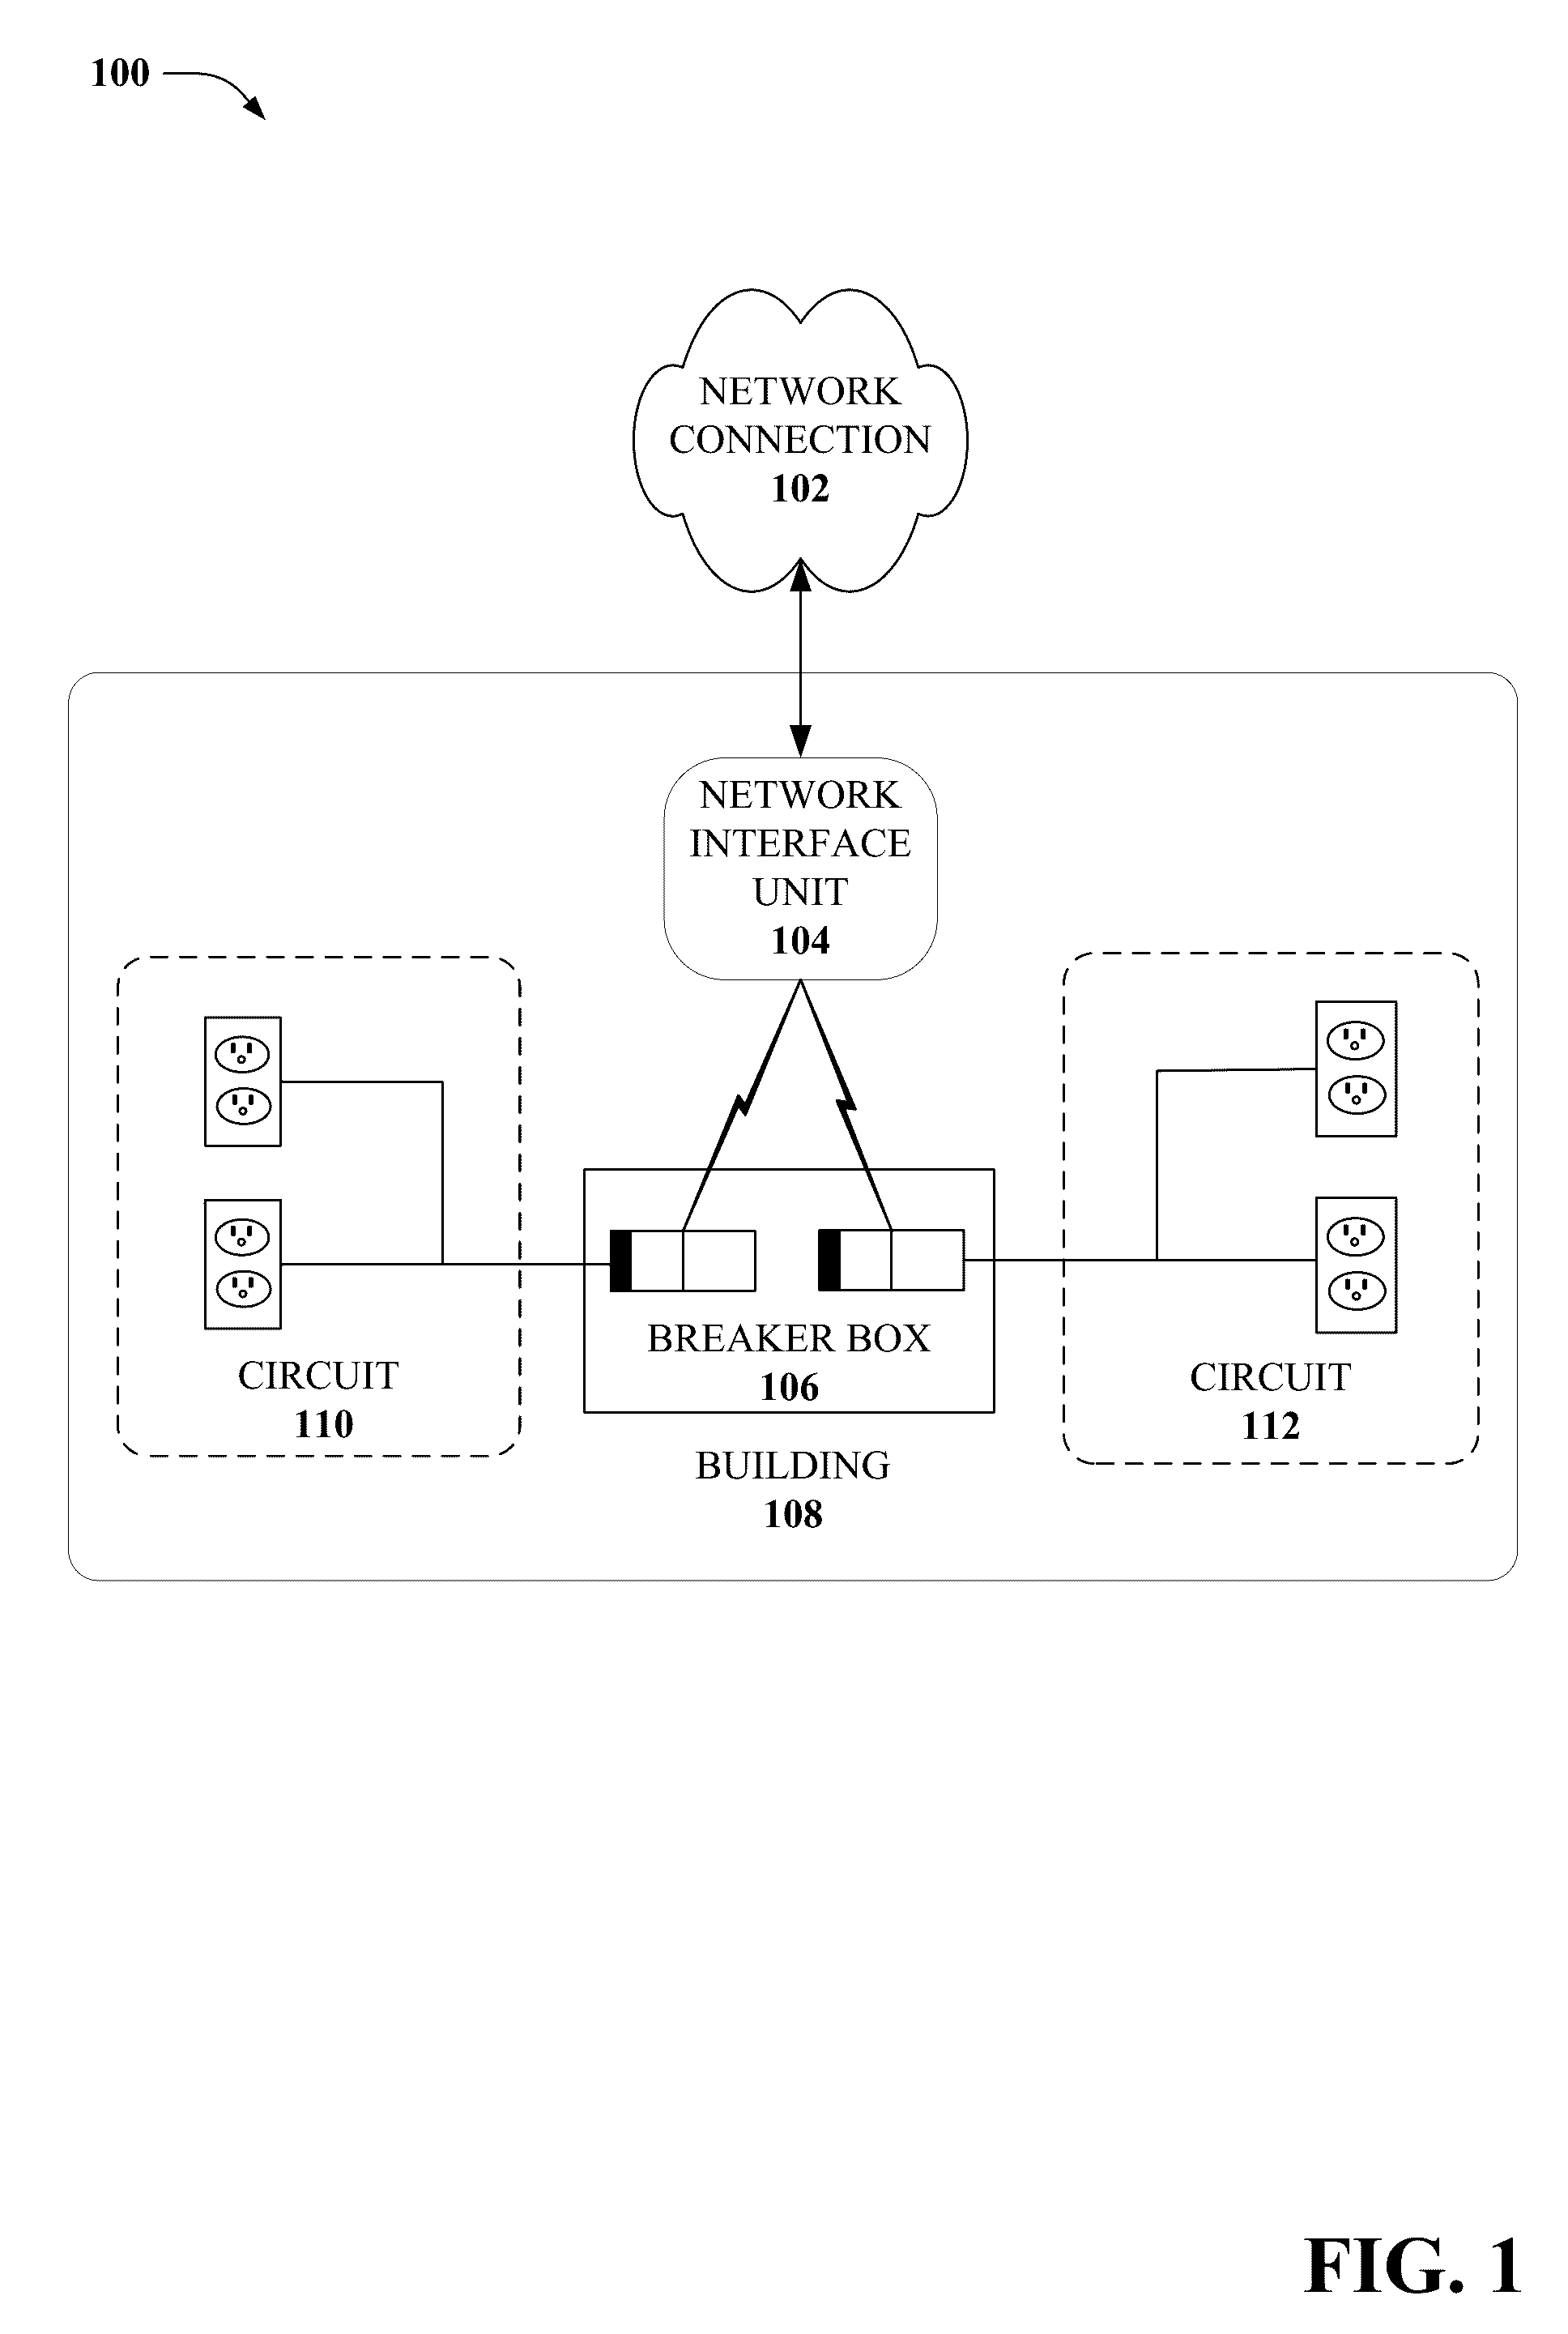 Us9685992b2 Circuit Panel Network And Methods Thereof Google Patents Randall 102 Central Heating Timer Wiring Diagram